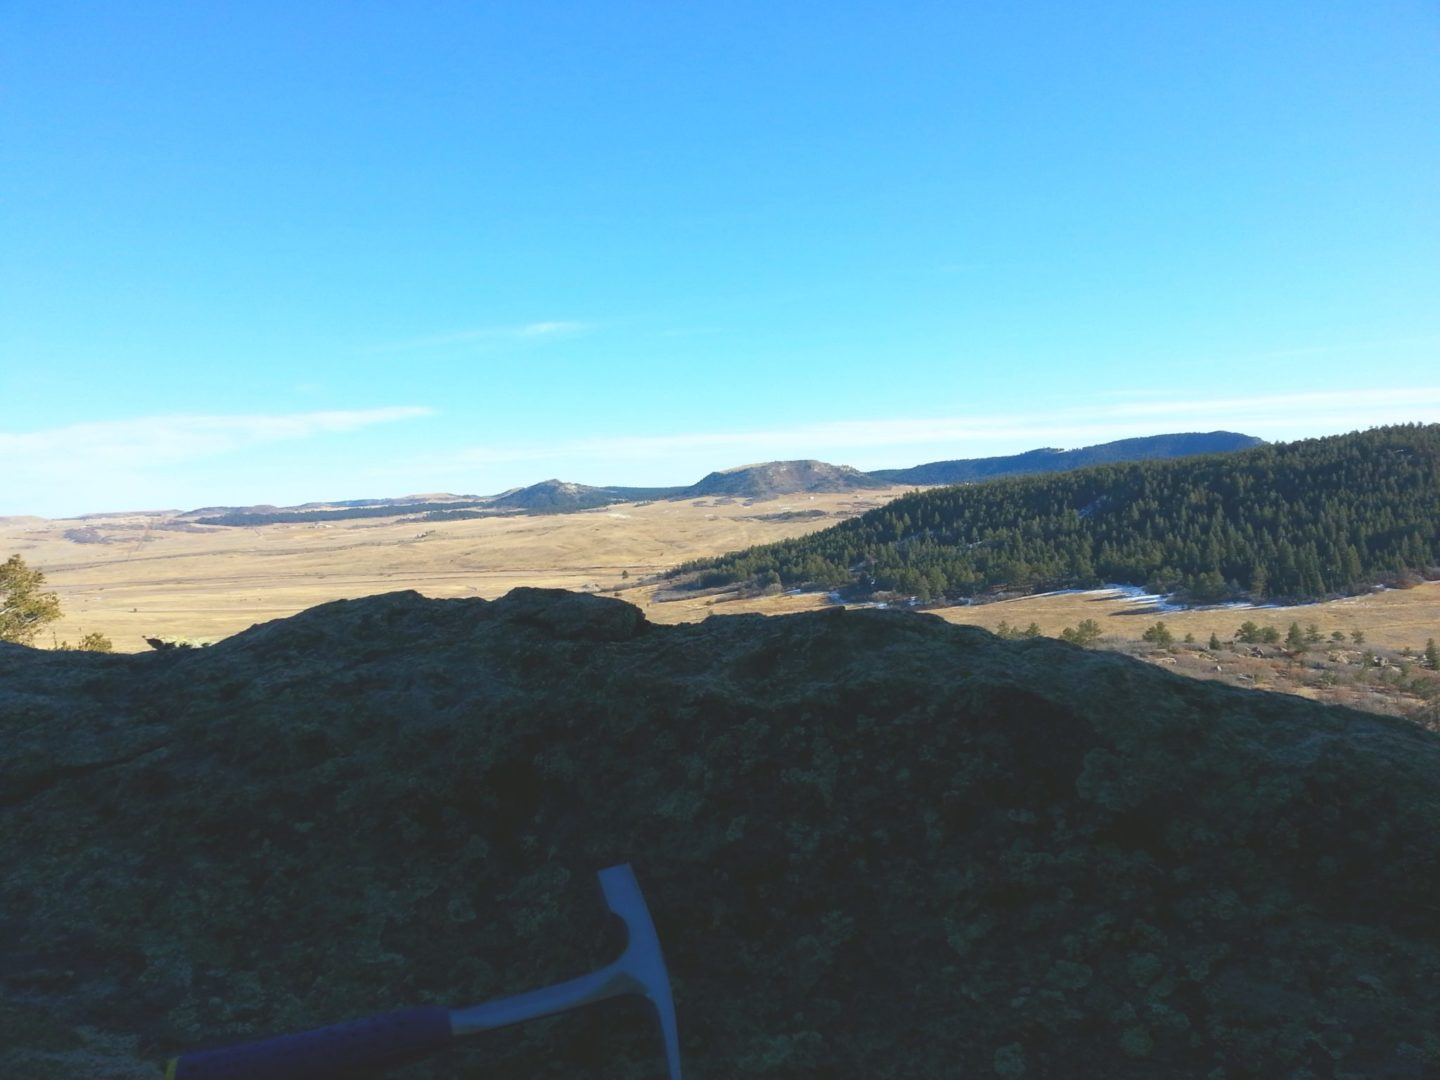 View of Spruce Mountain